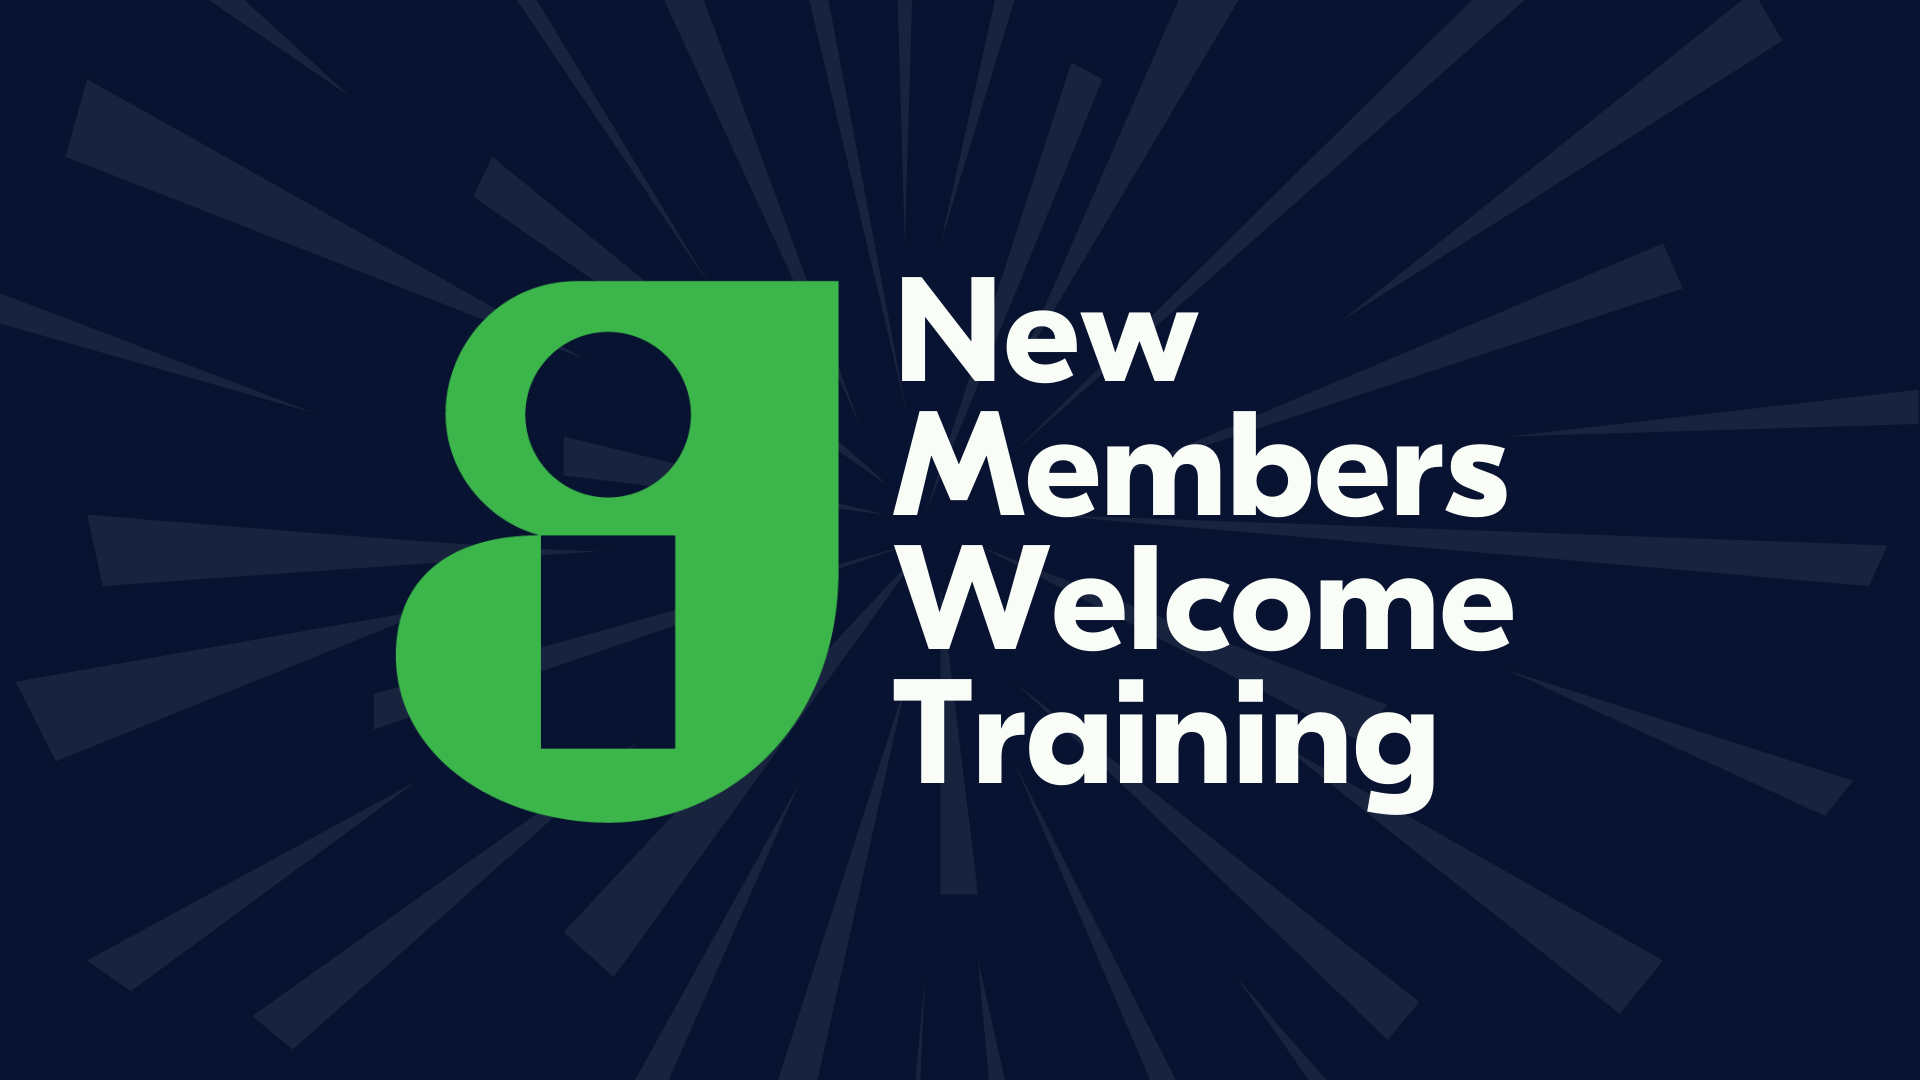 GI New Members Welcome Training